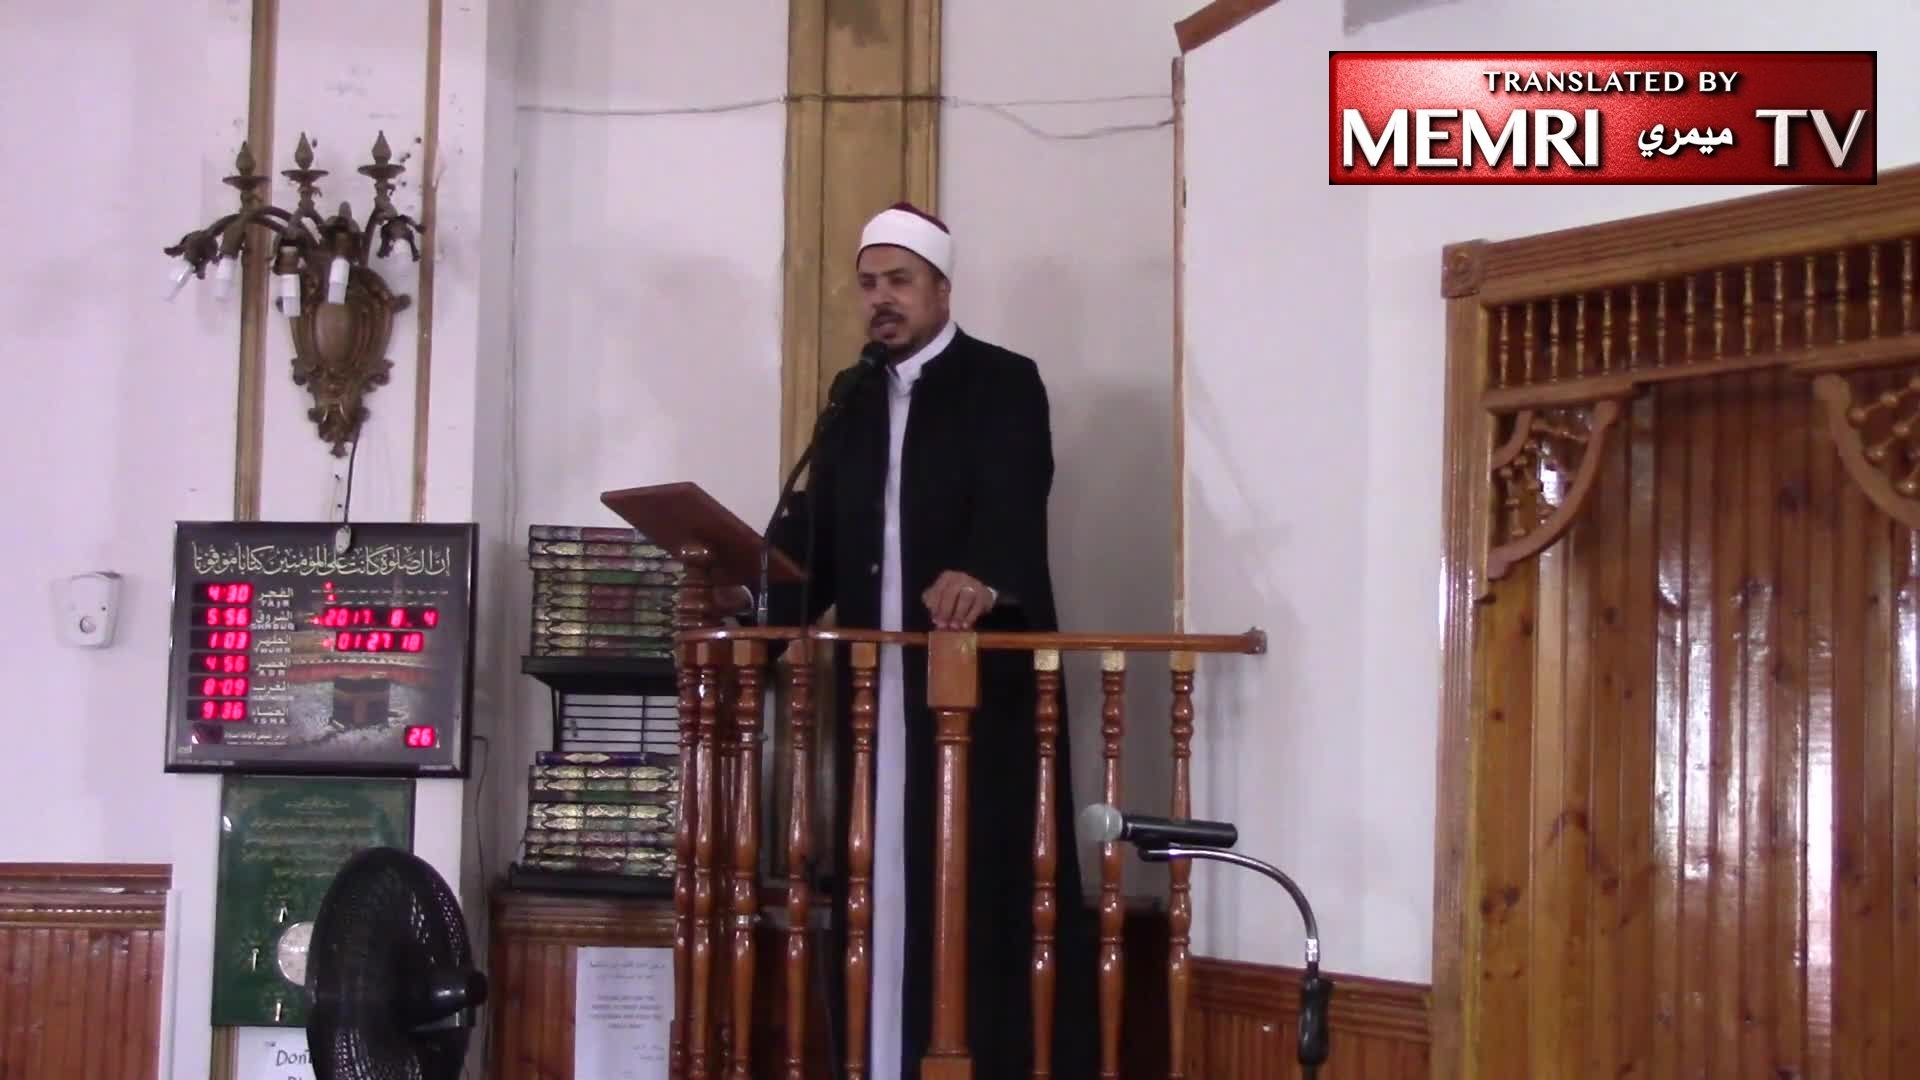 Islamic Center of Jersey City Imam Aymen Elkasaby following the Sinai Mosque Massacre: ISIS? Don't Be Ridiculous! This Could Only Have Been Done by the Jews, Arab Rulers